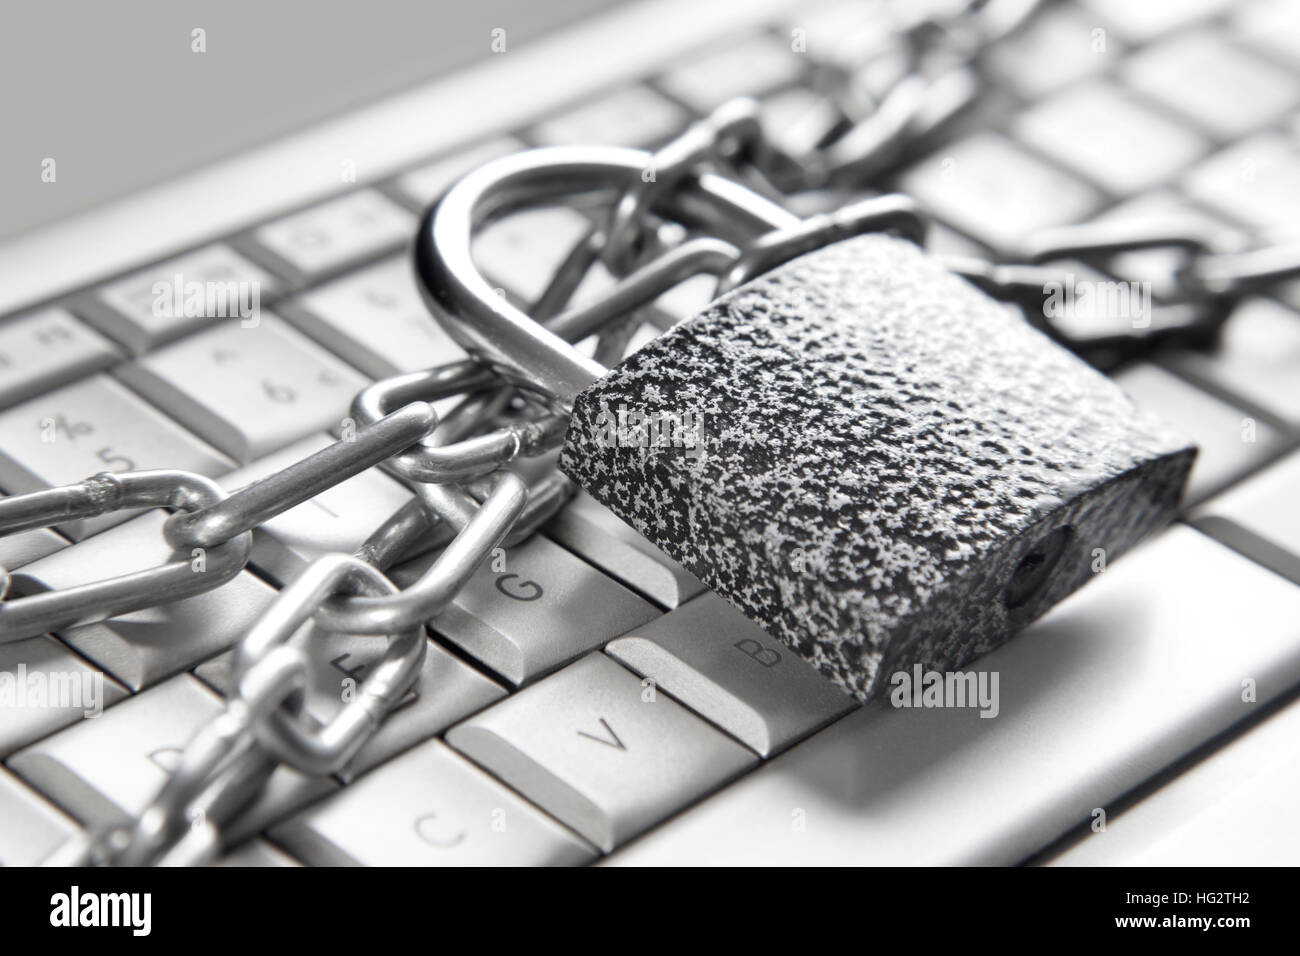 Computer security concept - Stock Image